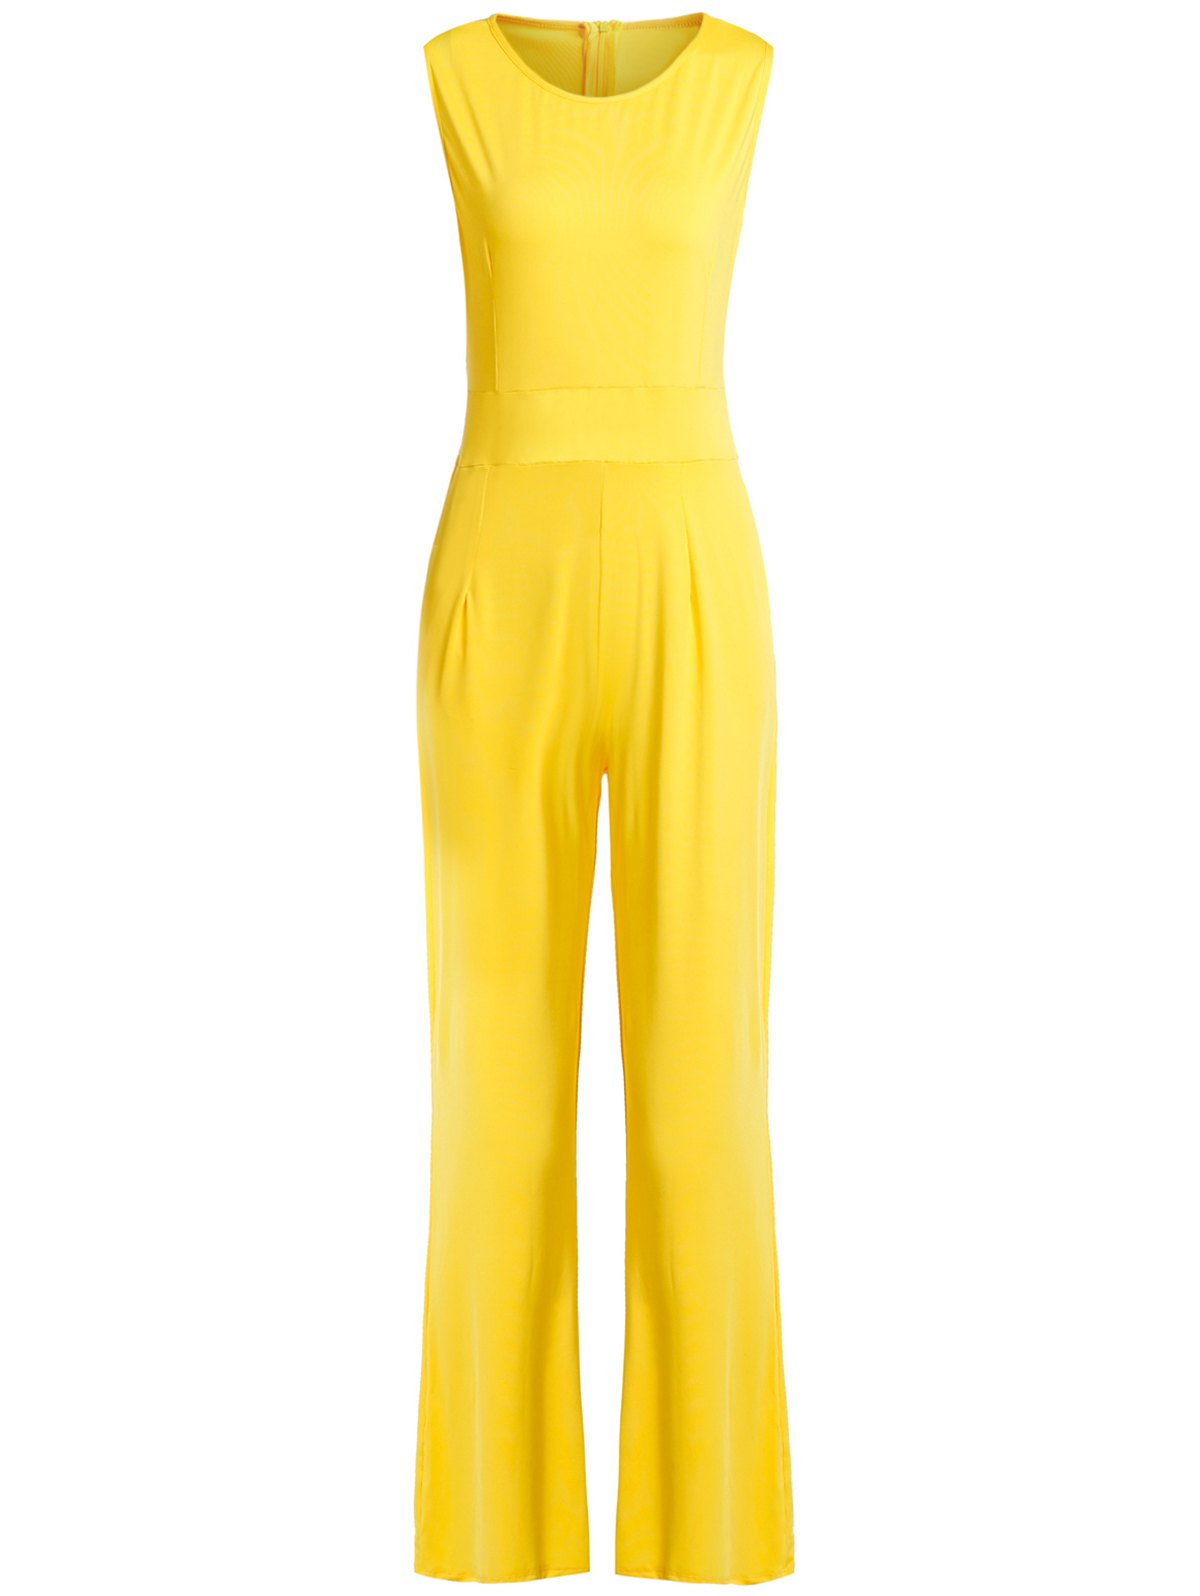 Stylish V-Neck Sleeveless Solid Color Jumpsuit For Women